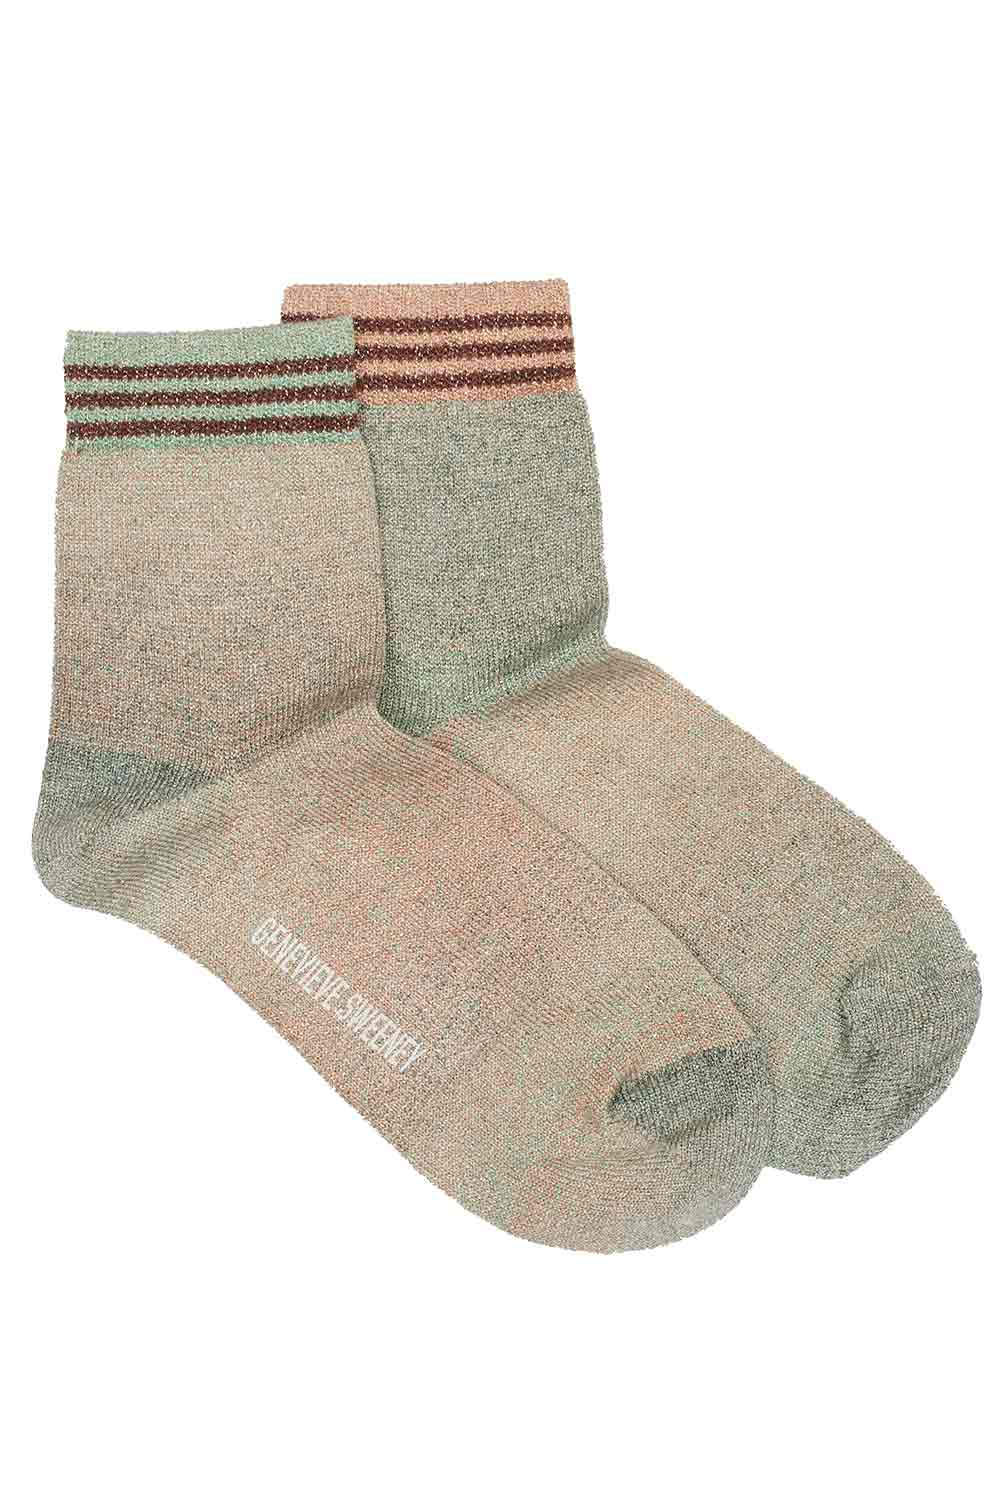 sparkly ladies socks ombre sunset